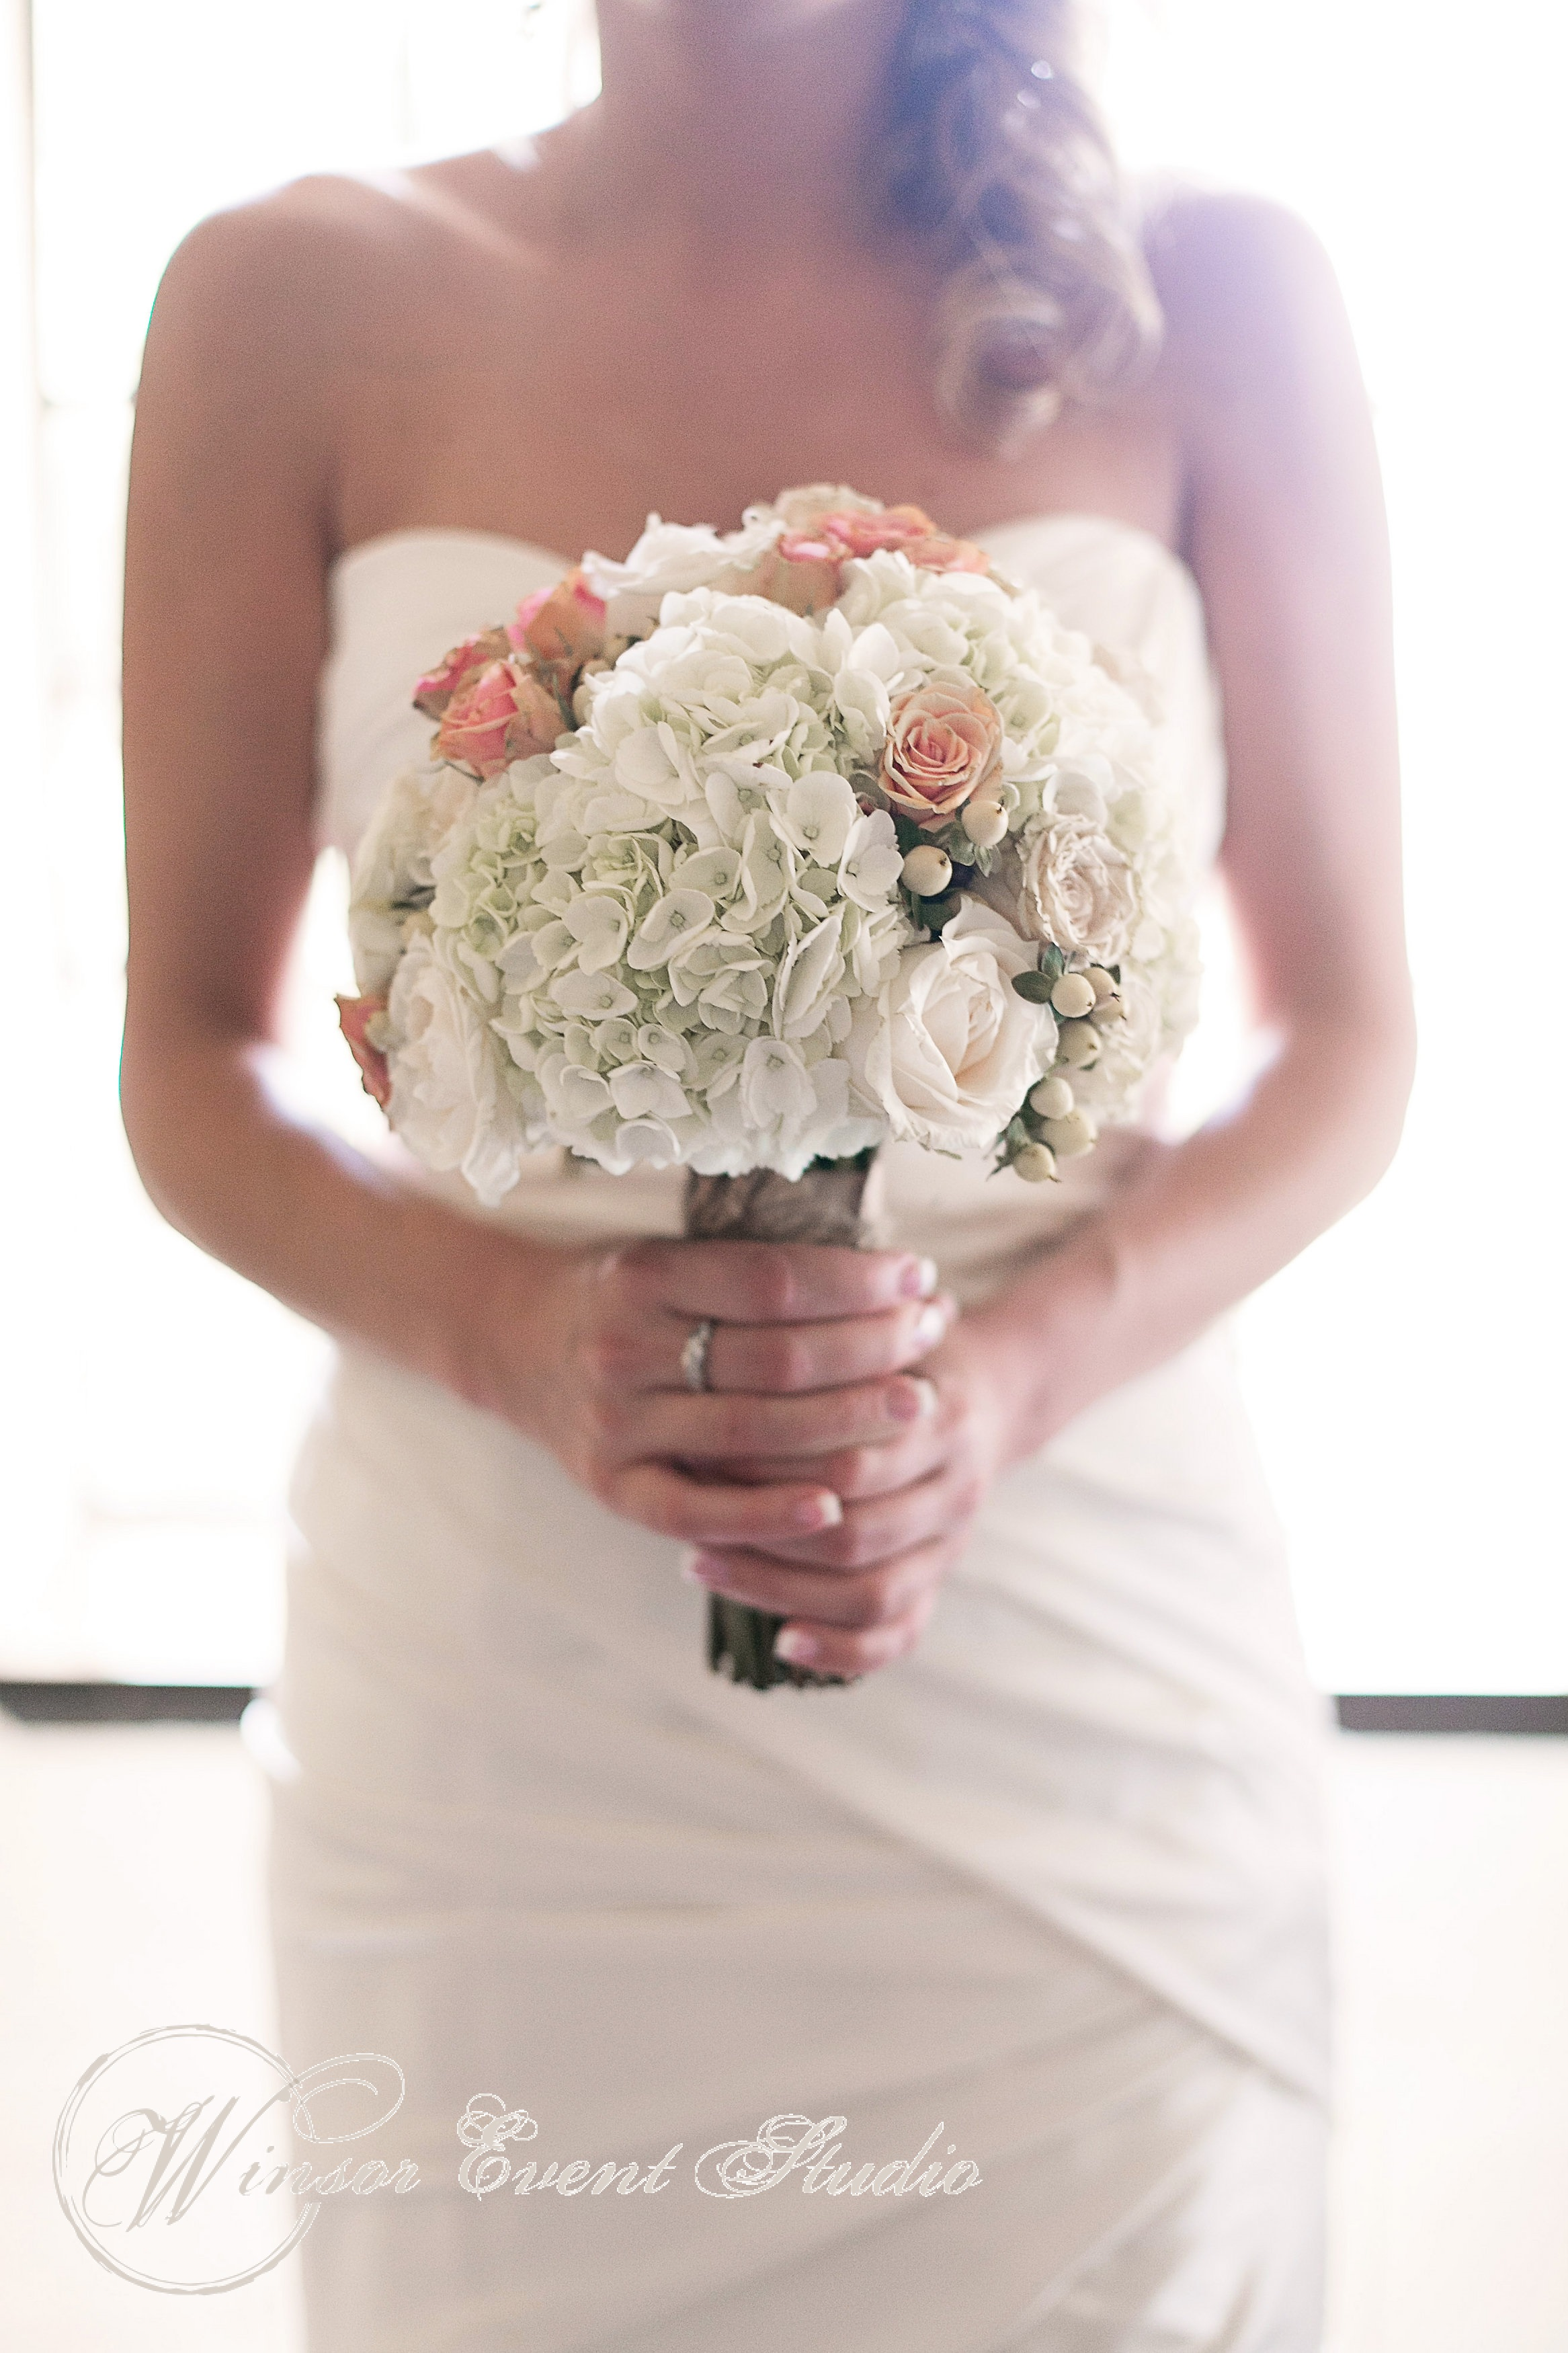 The bride carried a creamy bouquet of hydrangea, roses, and hypericum berries, dotted with nude pink roses